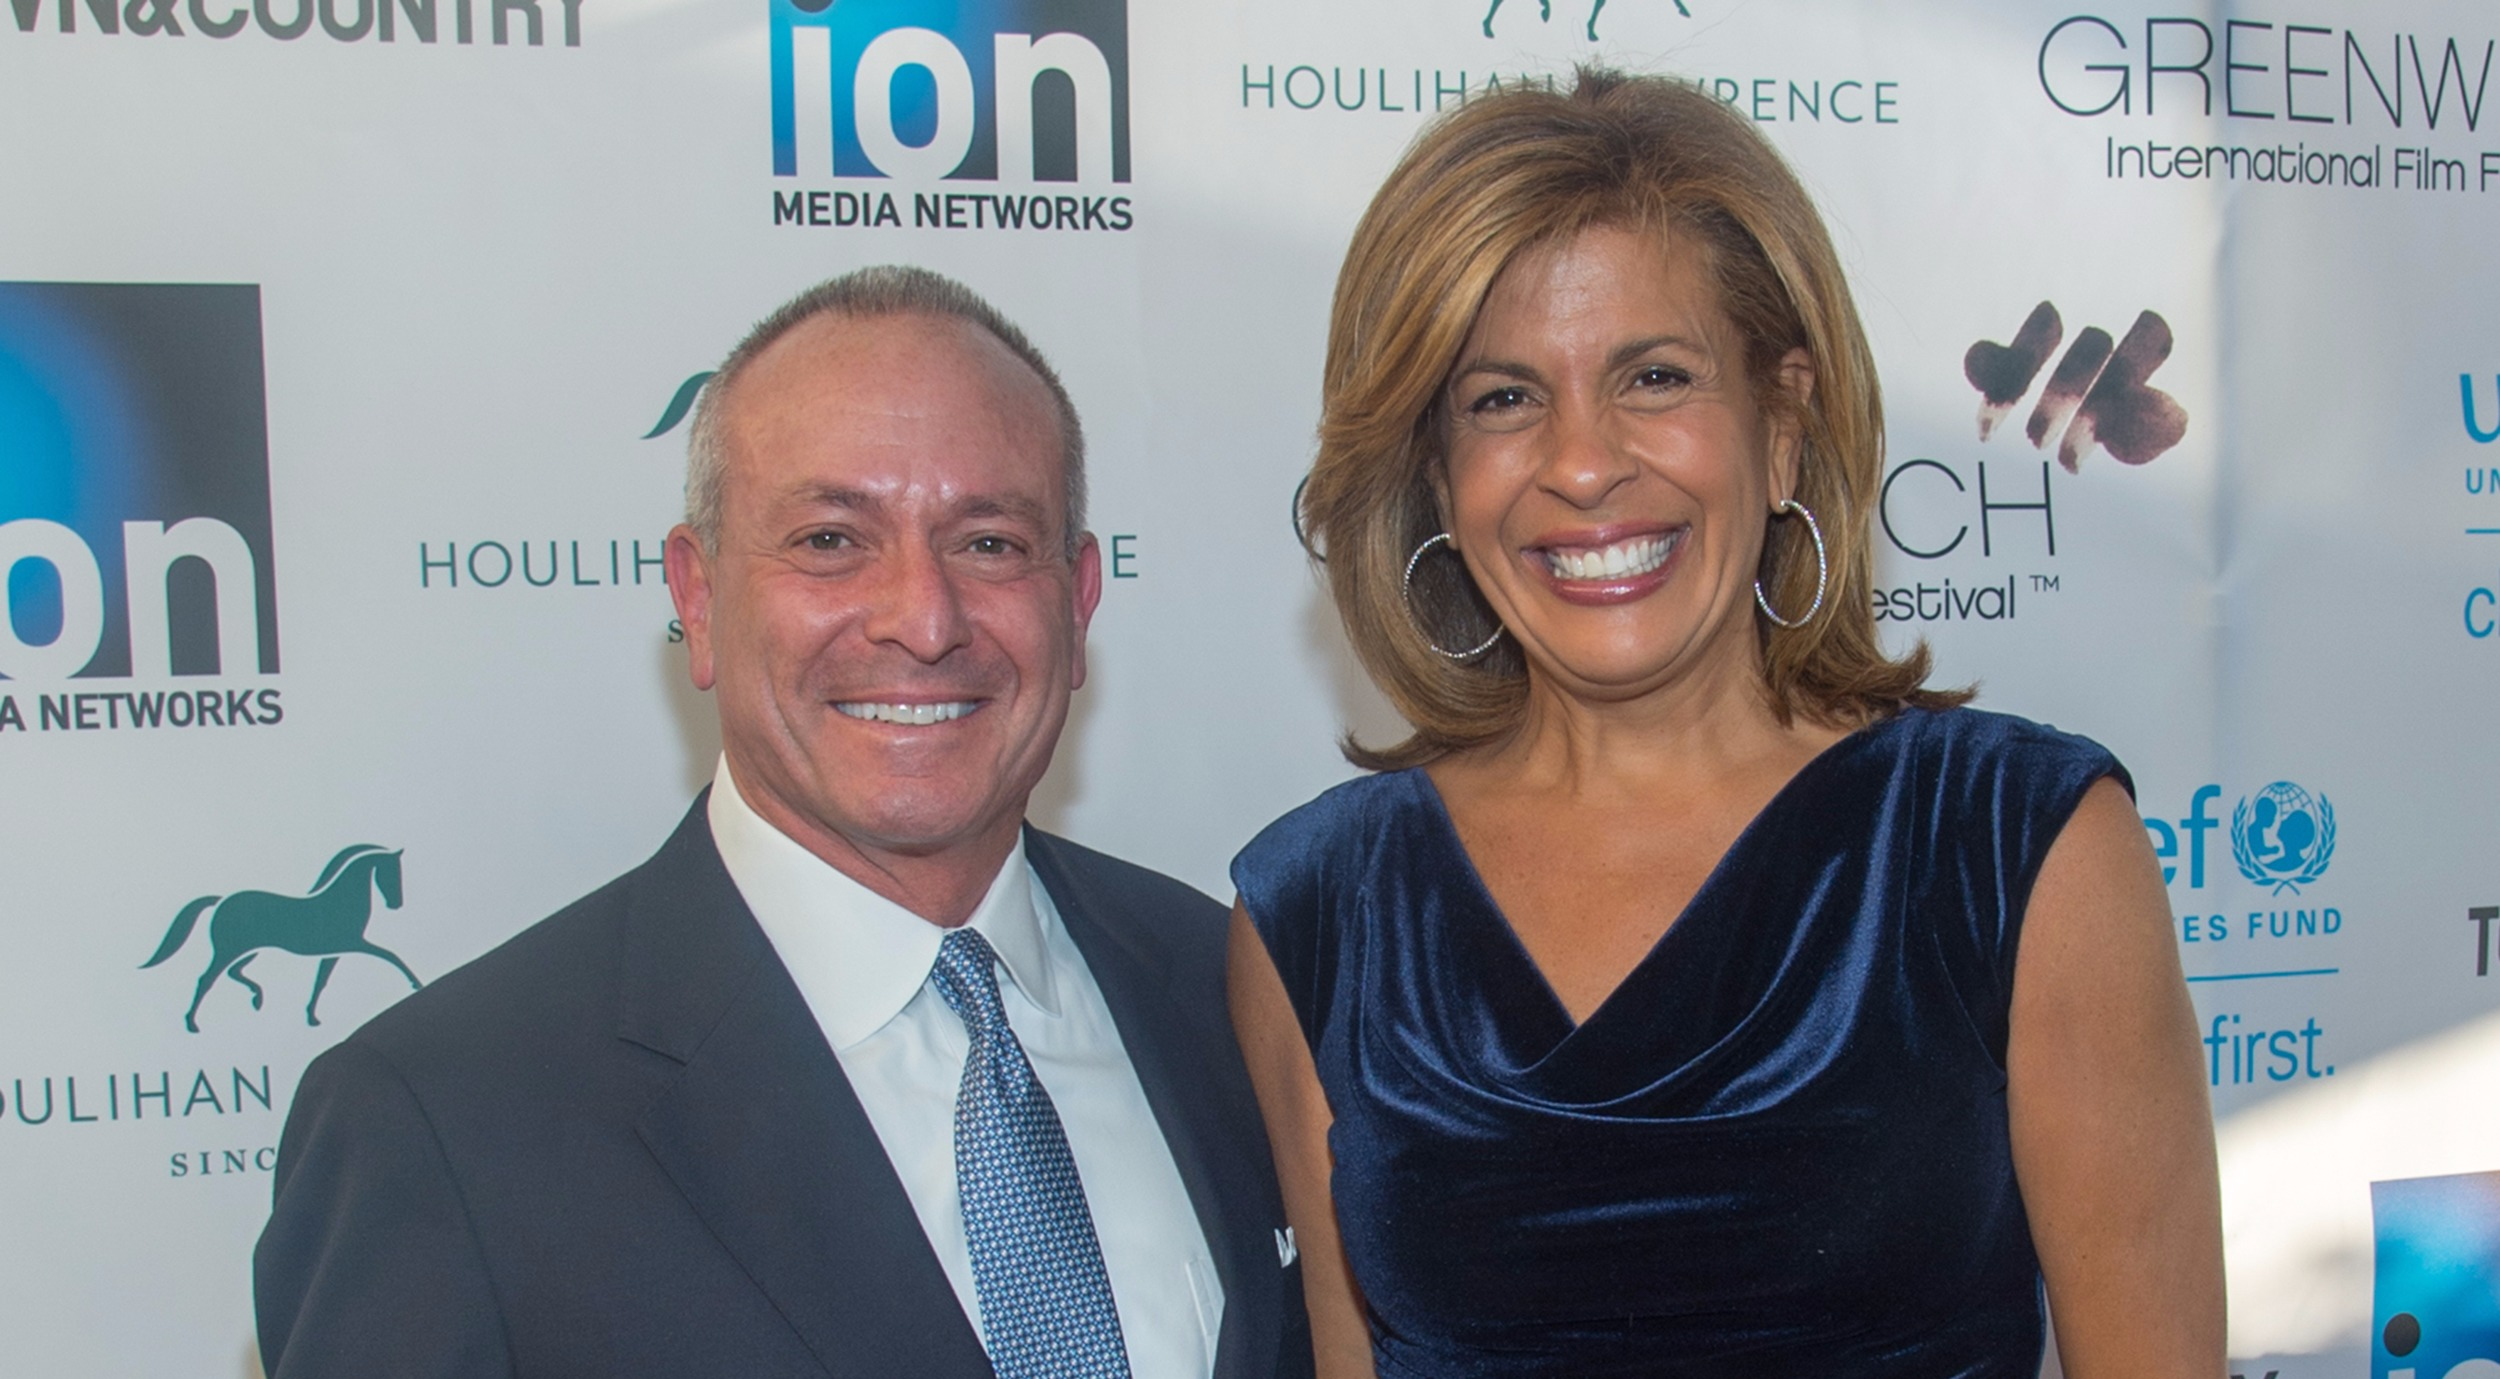 Hoda Kotb and Joel Schiffman at an event